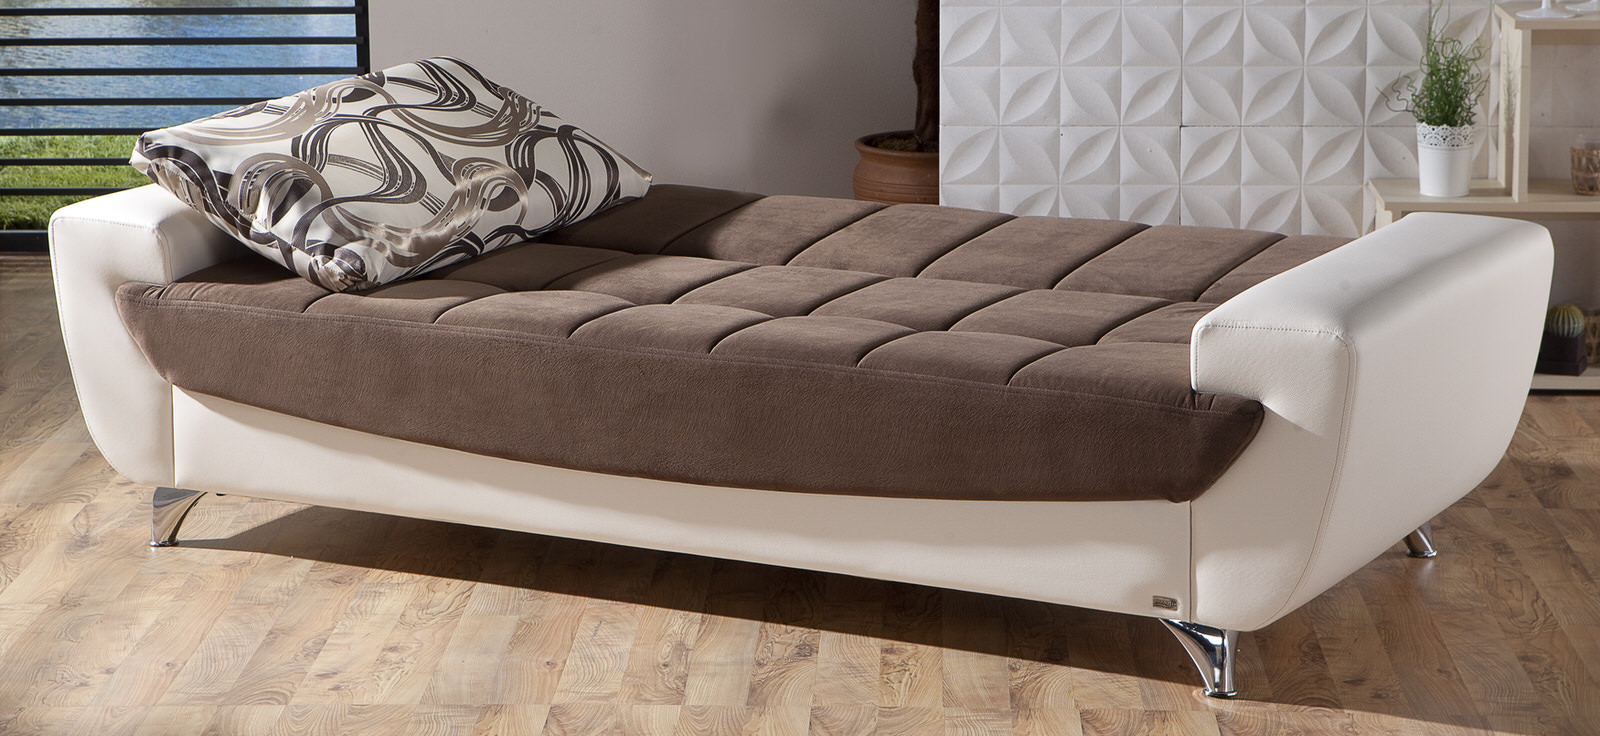 35 best sofa beds design ideas in uk Couch futon bed